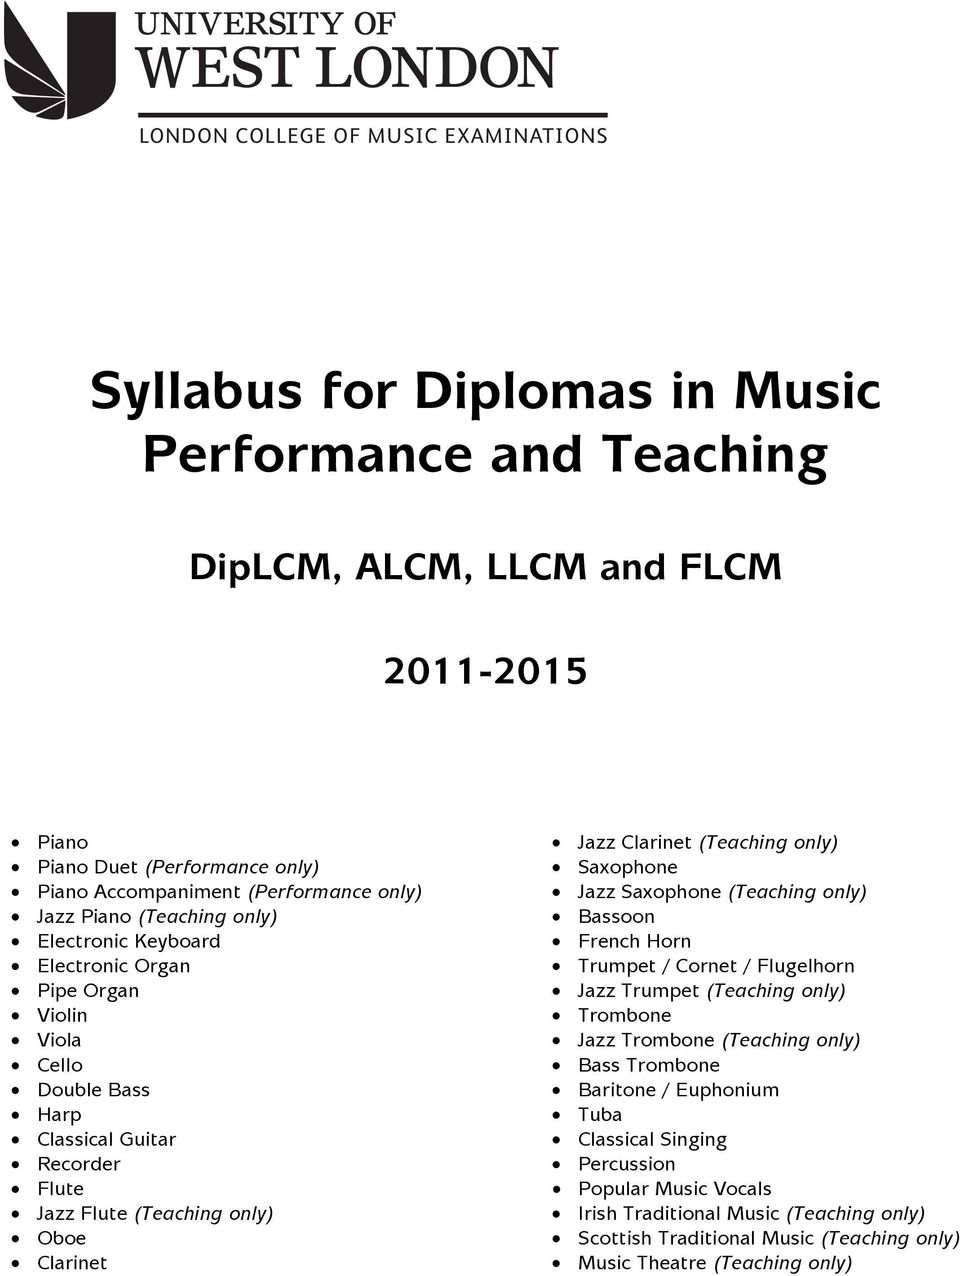 Music Performance and Teaching Diplomas Syllabus - PDF